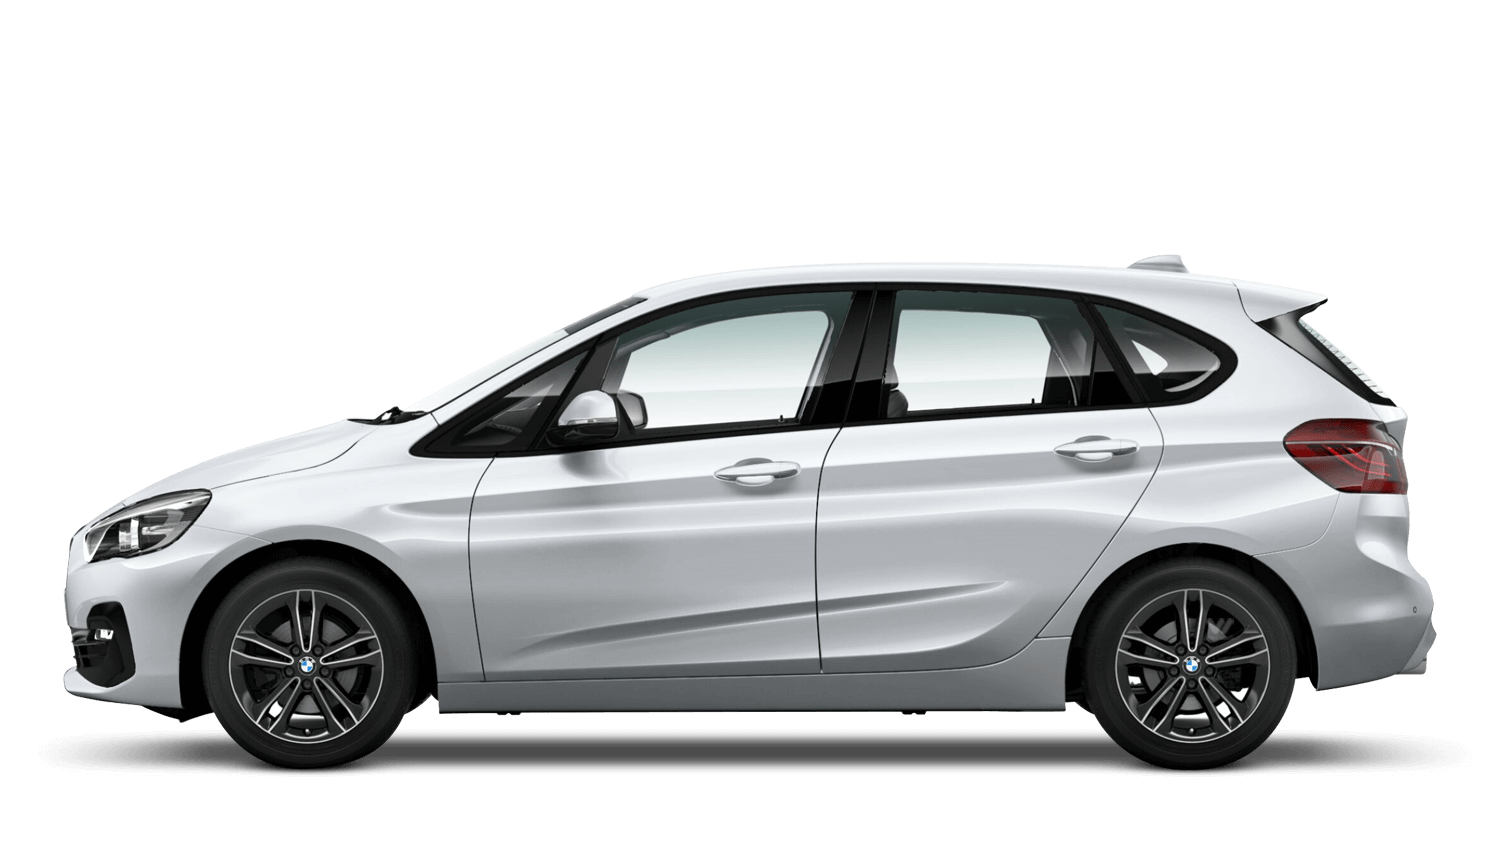 Glacier Silver (Metallic) BMW 2 Series Active Tourer